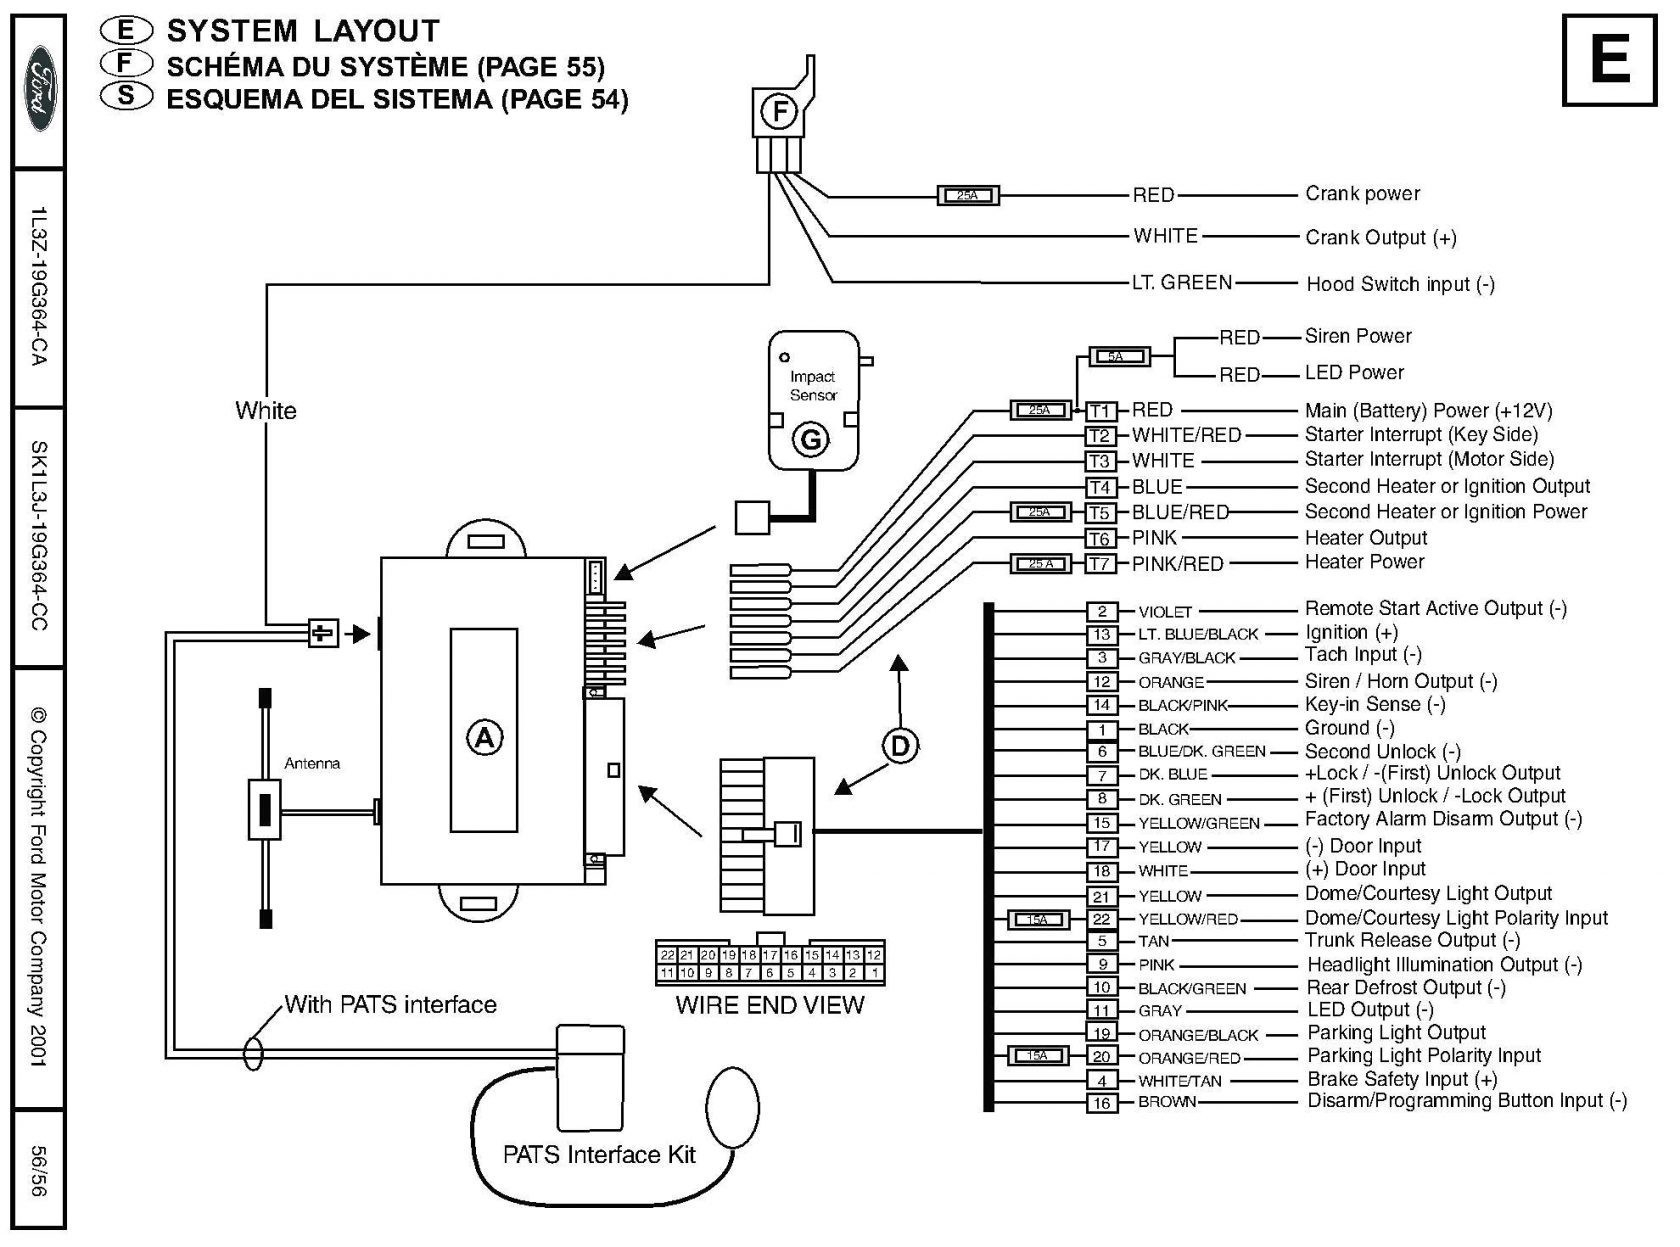 Intoxalock Wiring Diagram